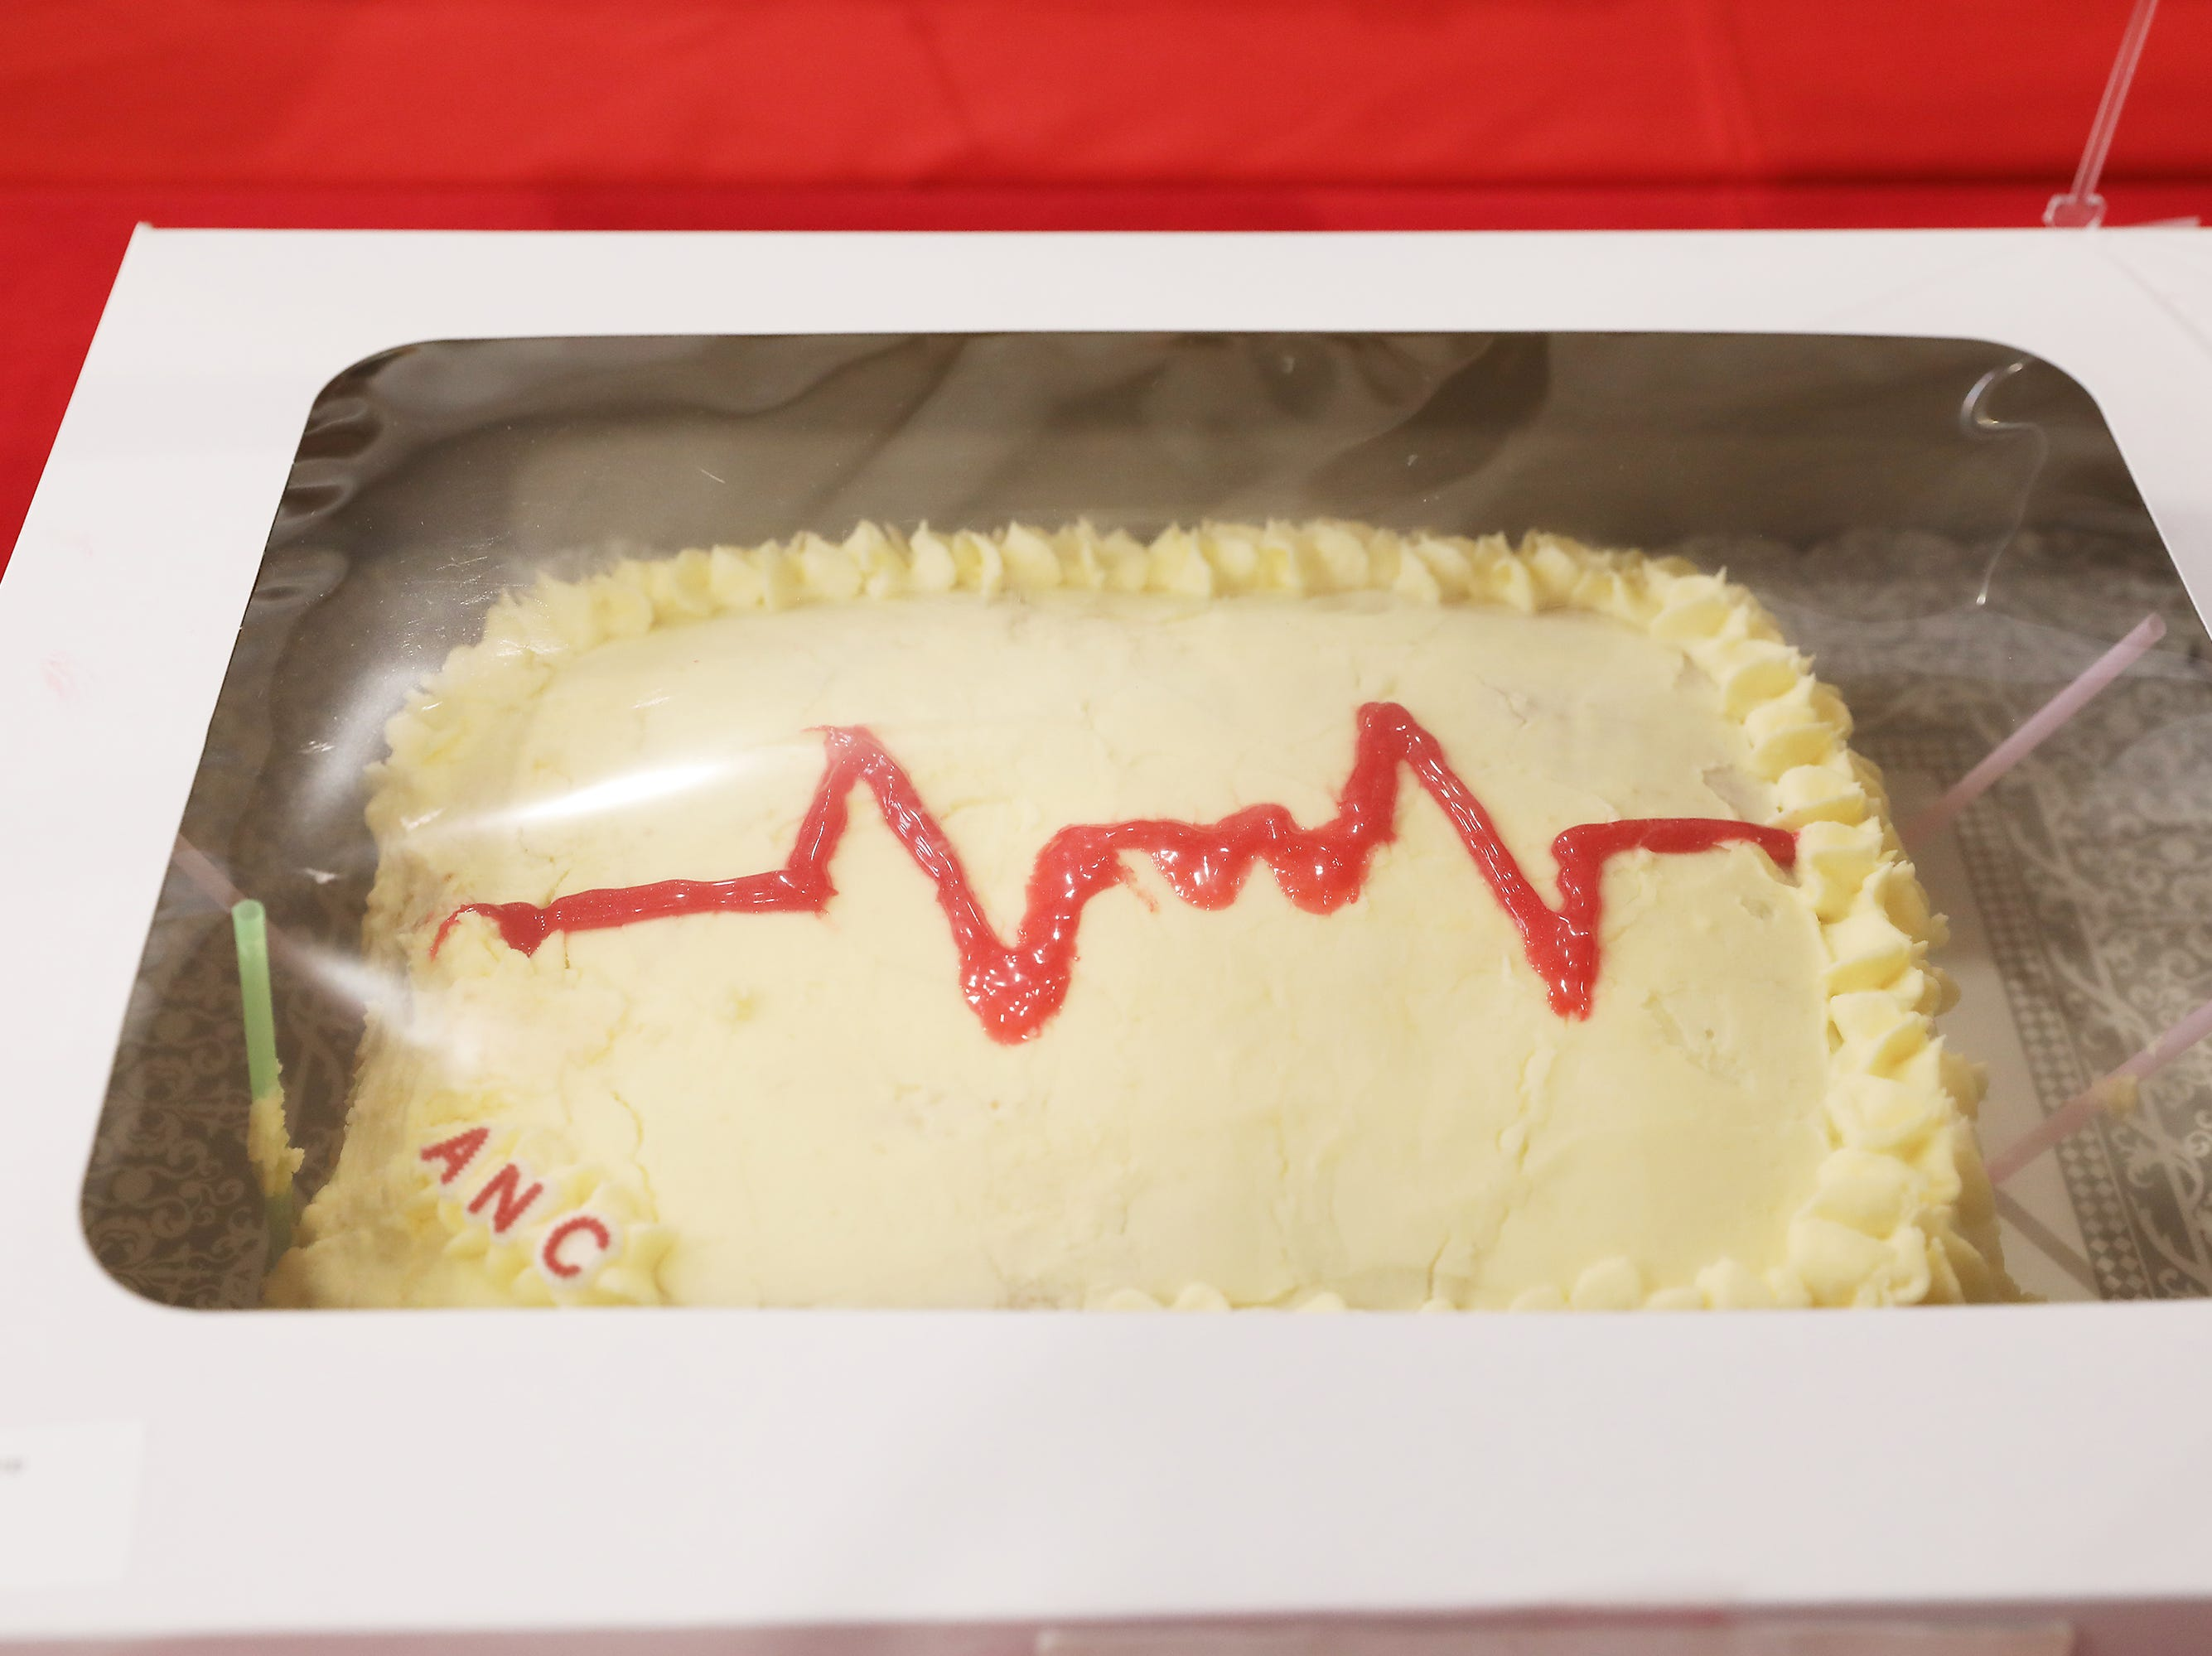 10:15 A.M. Friday cake 259 Acute Nursing Care - BP Gas gift card, Casa Bella gift card, Shoe Carnival gift card, The Children's Place gift card, Rue 21 gift card; $75